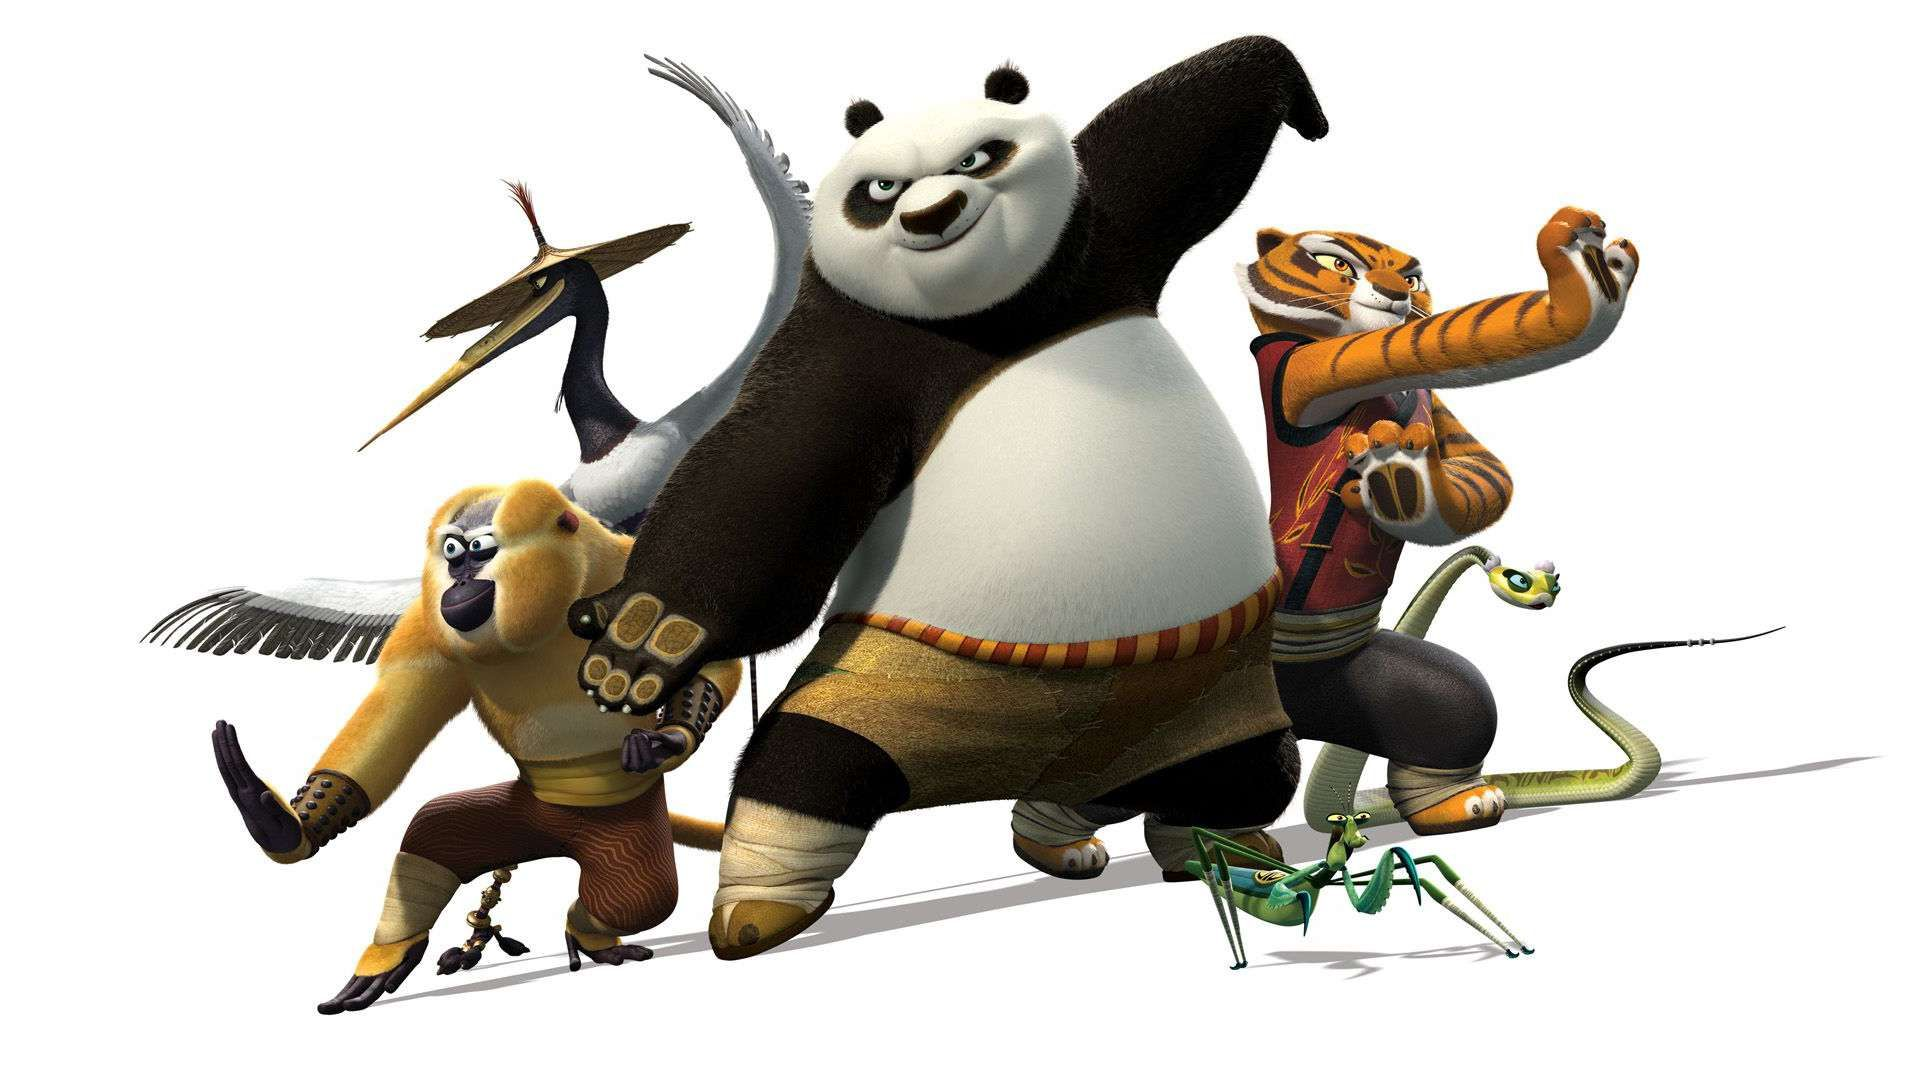 Kung fu panda iphone wallpaper - Click Here To Download In Hd Format 2011 Kung Fu Panda 2 Hd Wallpapers